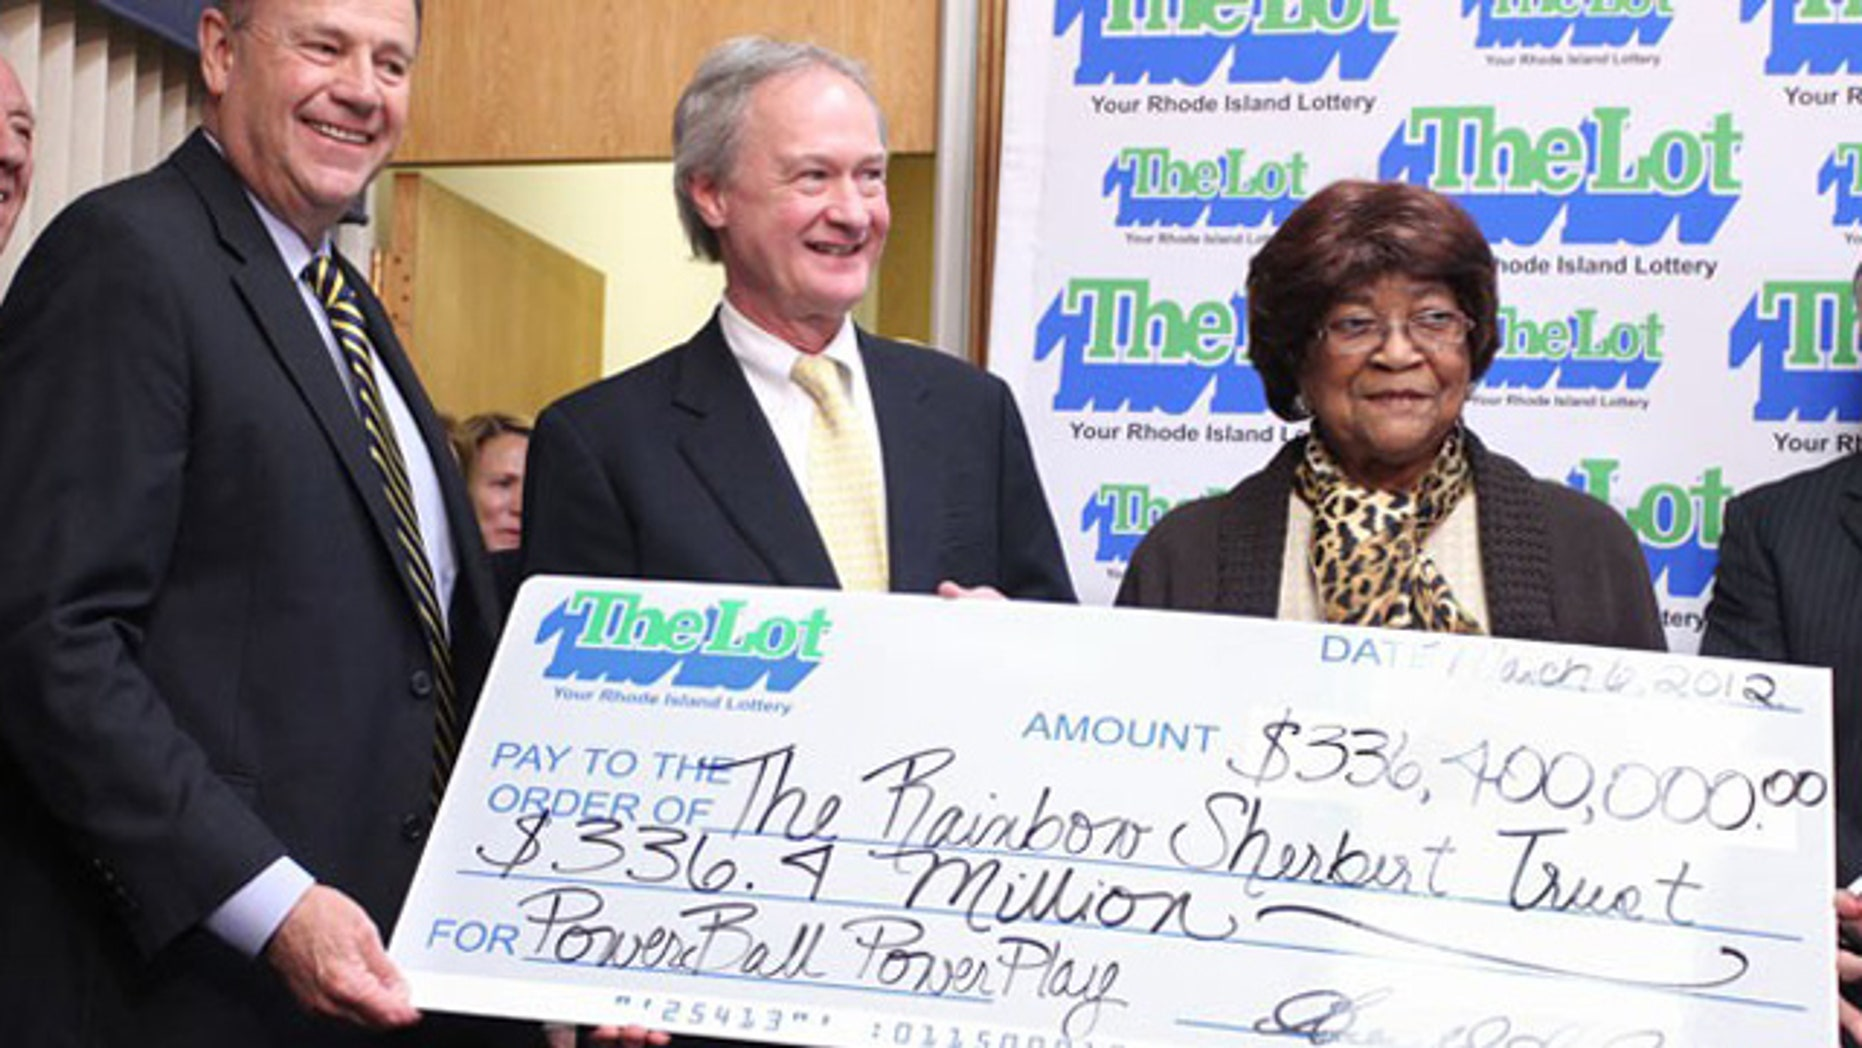 Louise White won February's $336.4 million Powerball jackpot, sleeping with the winning ticket in her Bible until coming forward to claim the sixth-largest U.S. prize, a family representative said. (AP)